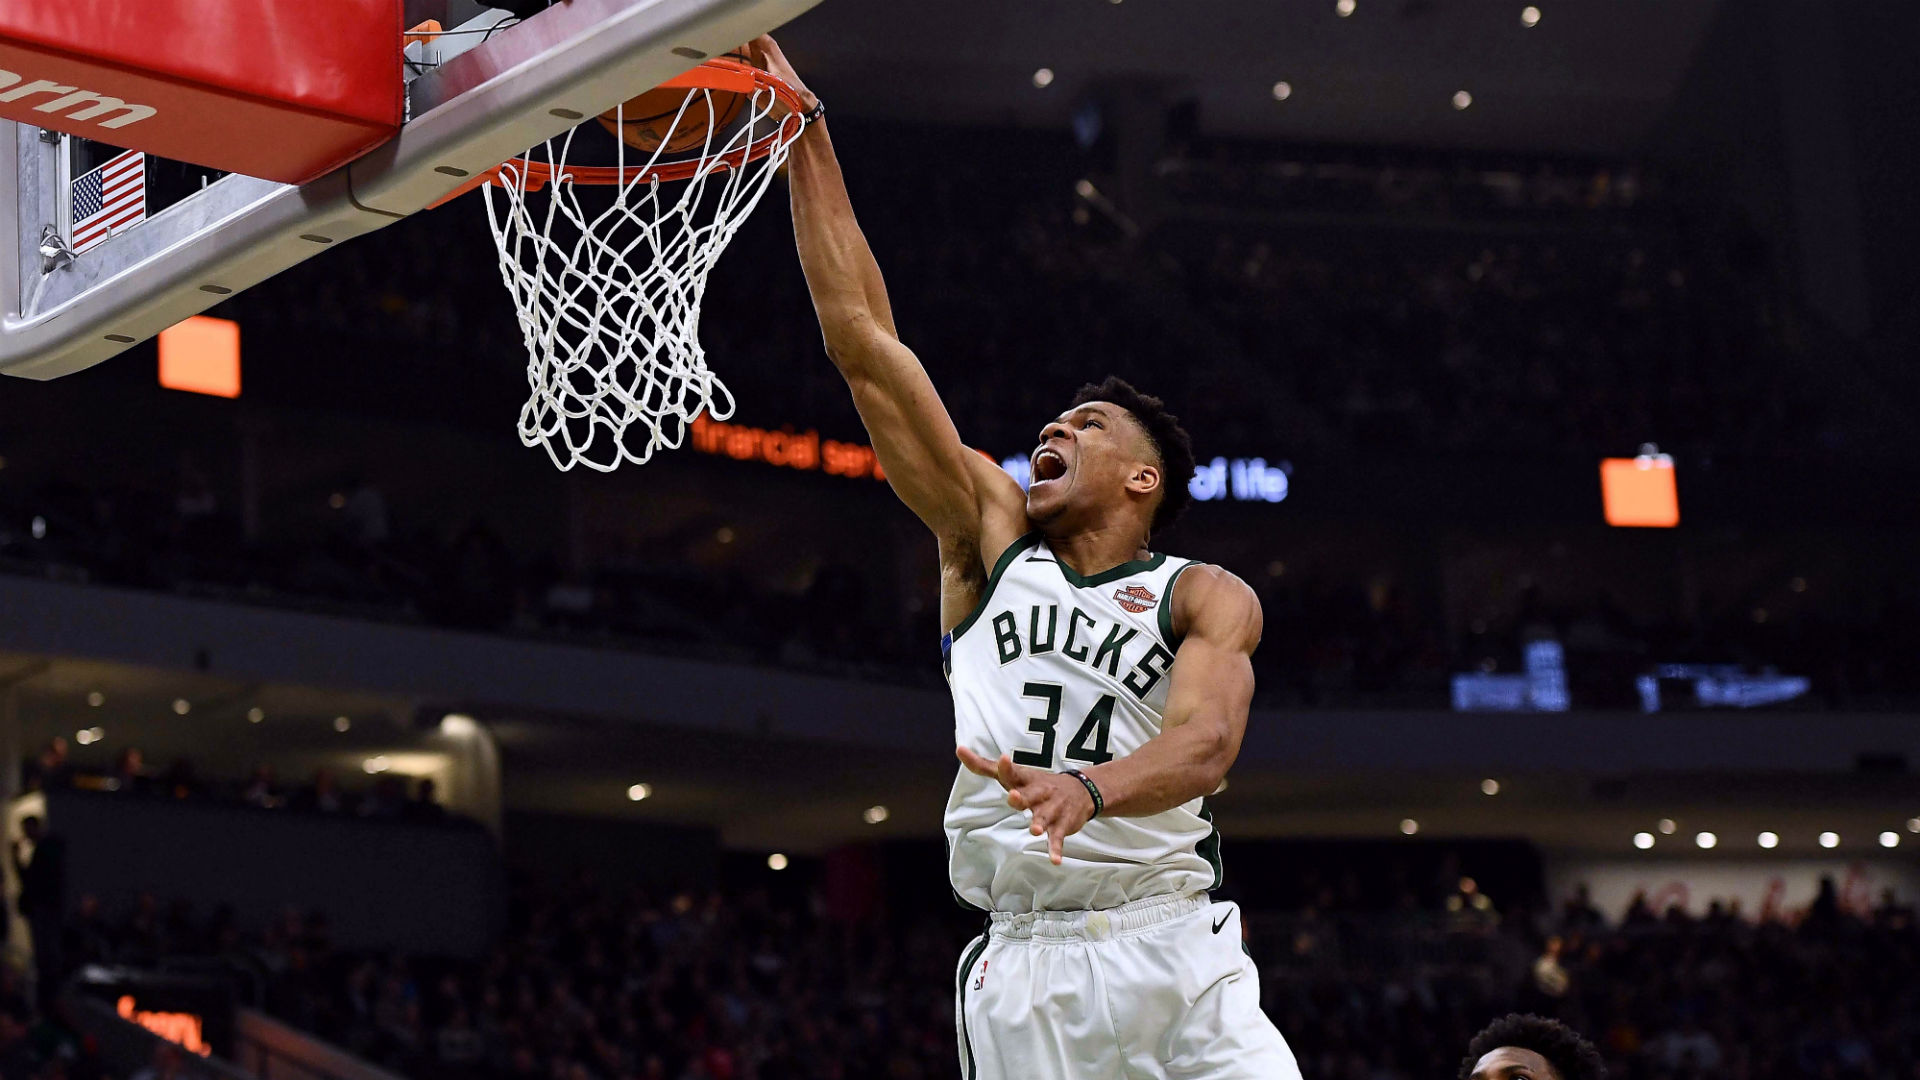 ec72ab3c51e Giannis unfazed by NBA MVP talk after beating Rockets